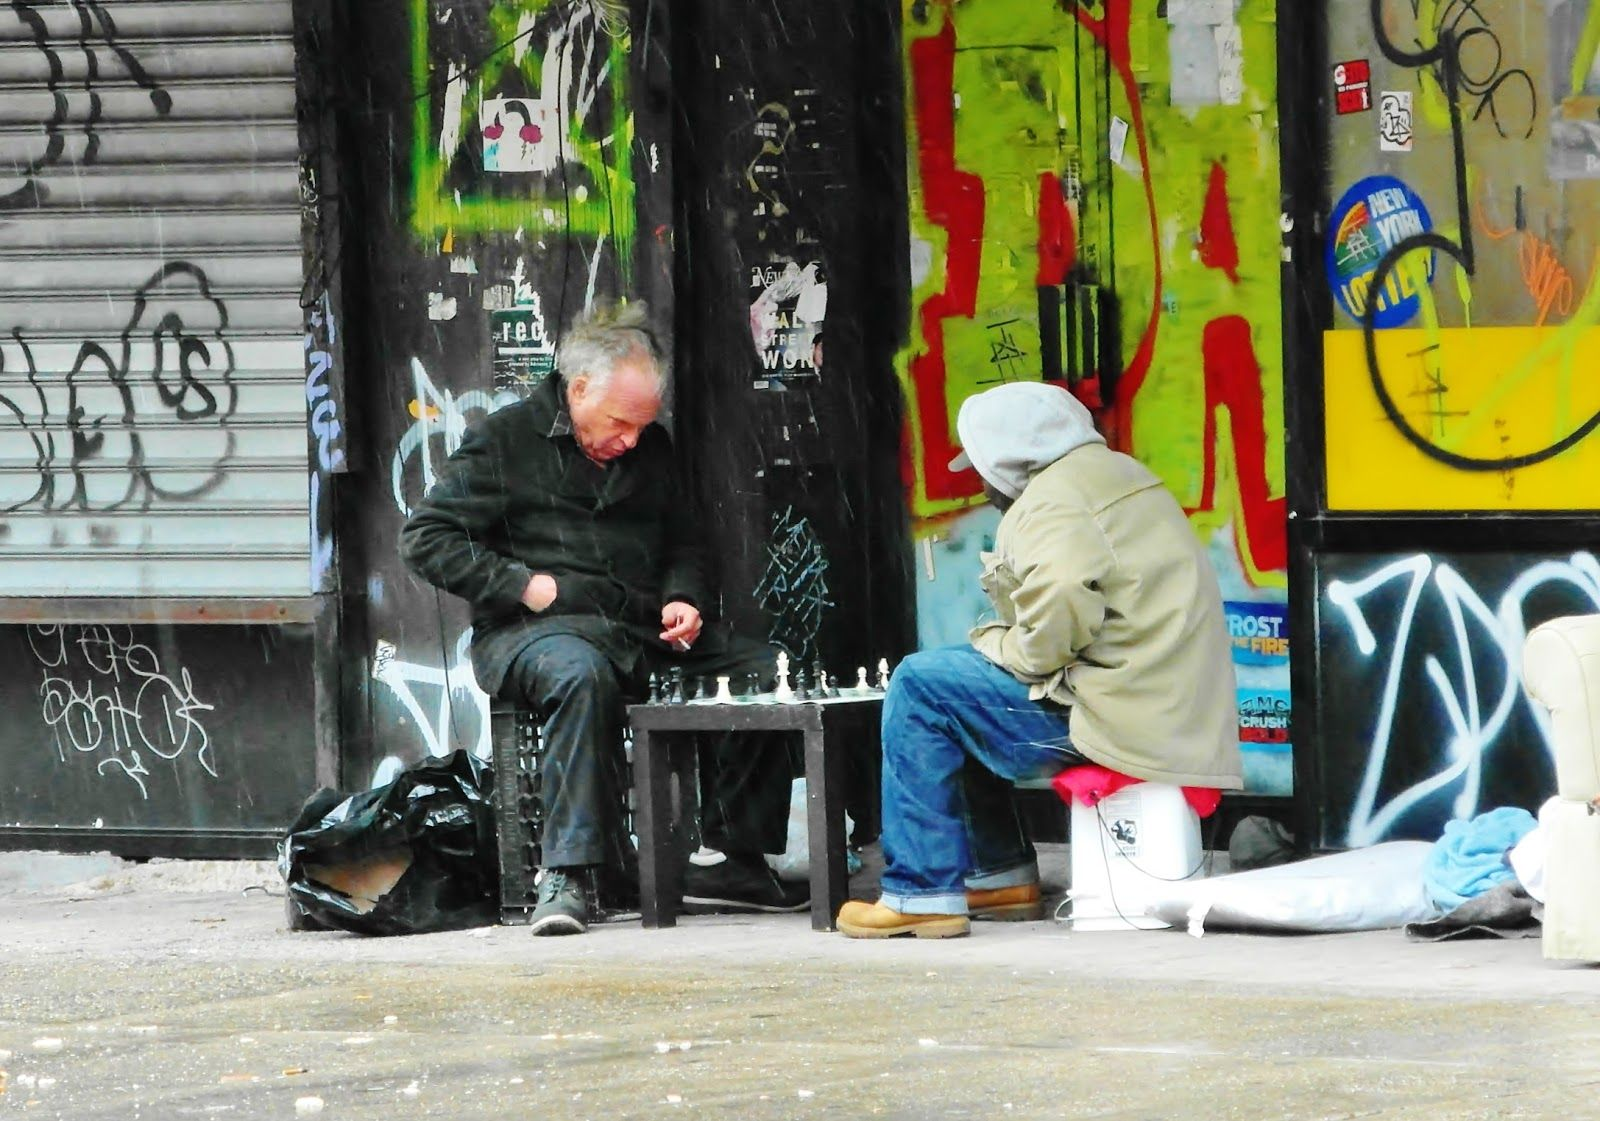 EV Grieve: A game of chess at 100 Avenue A